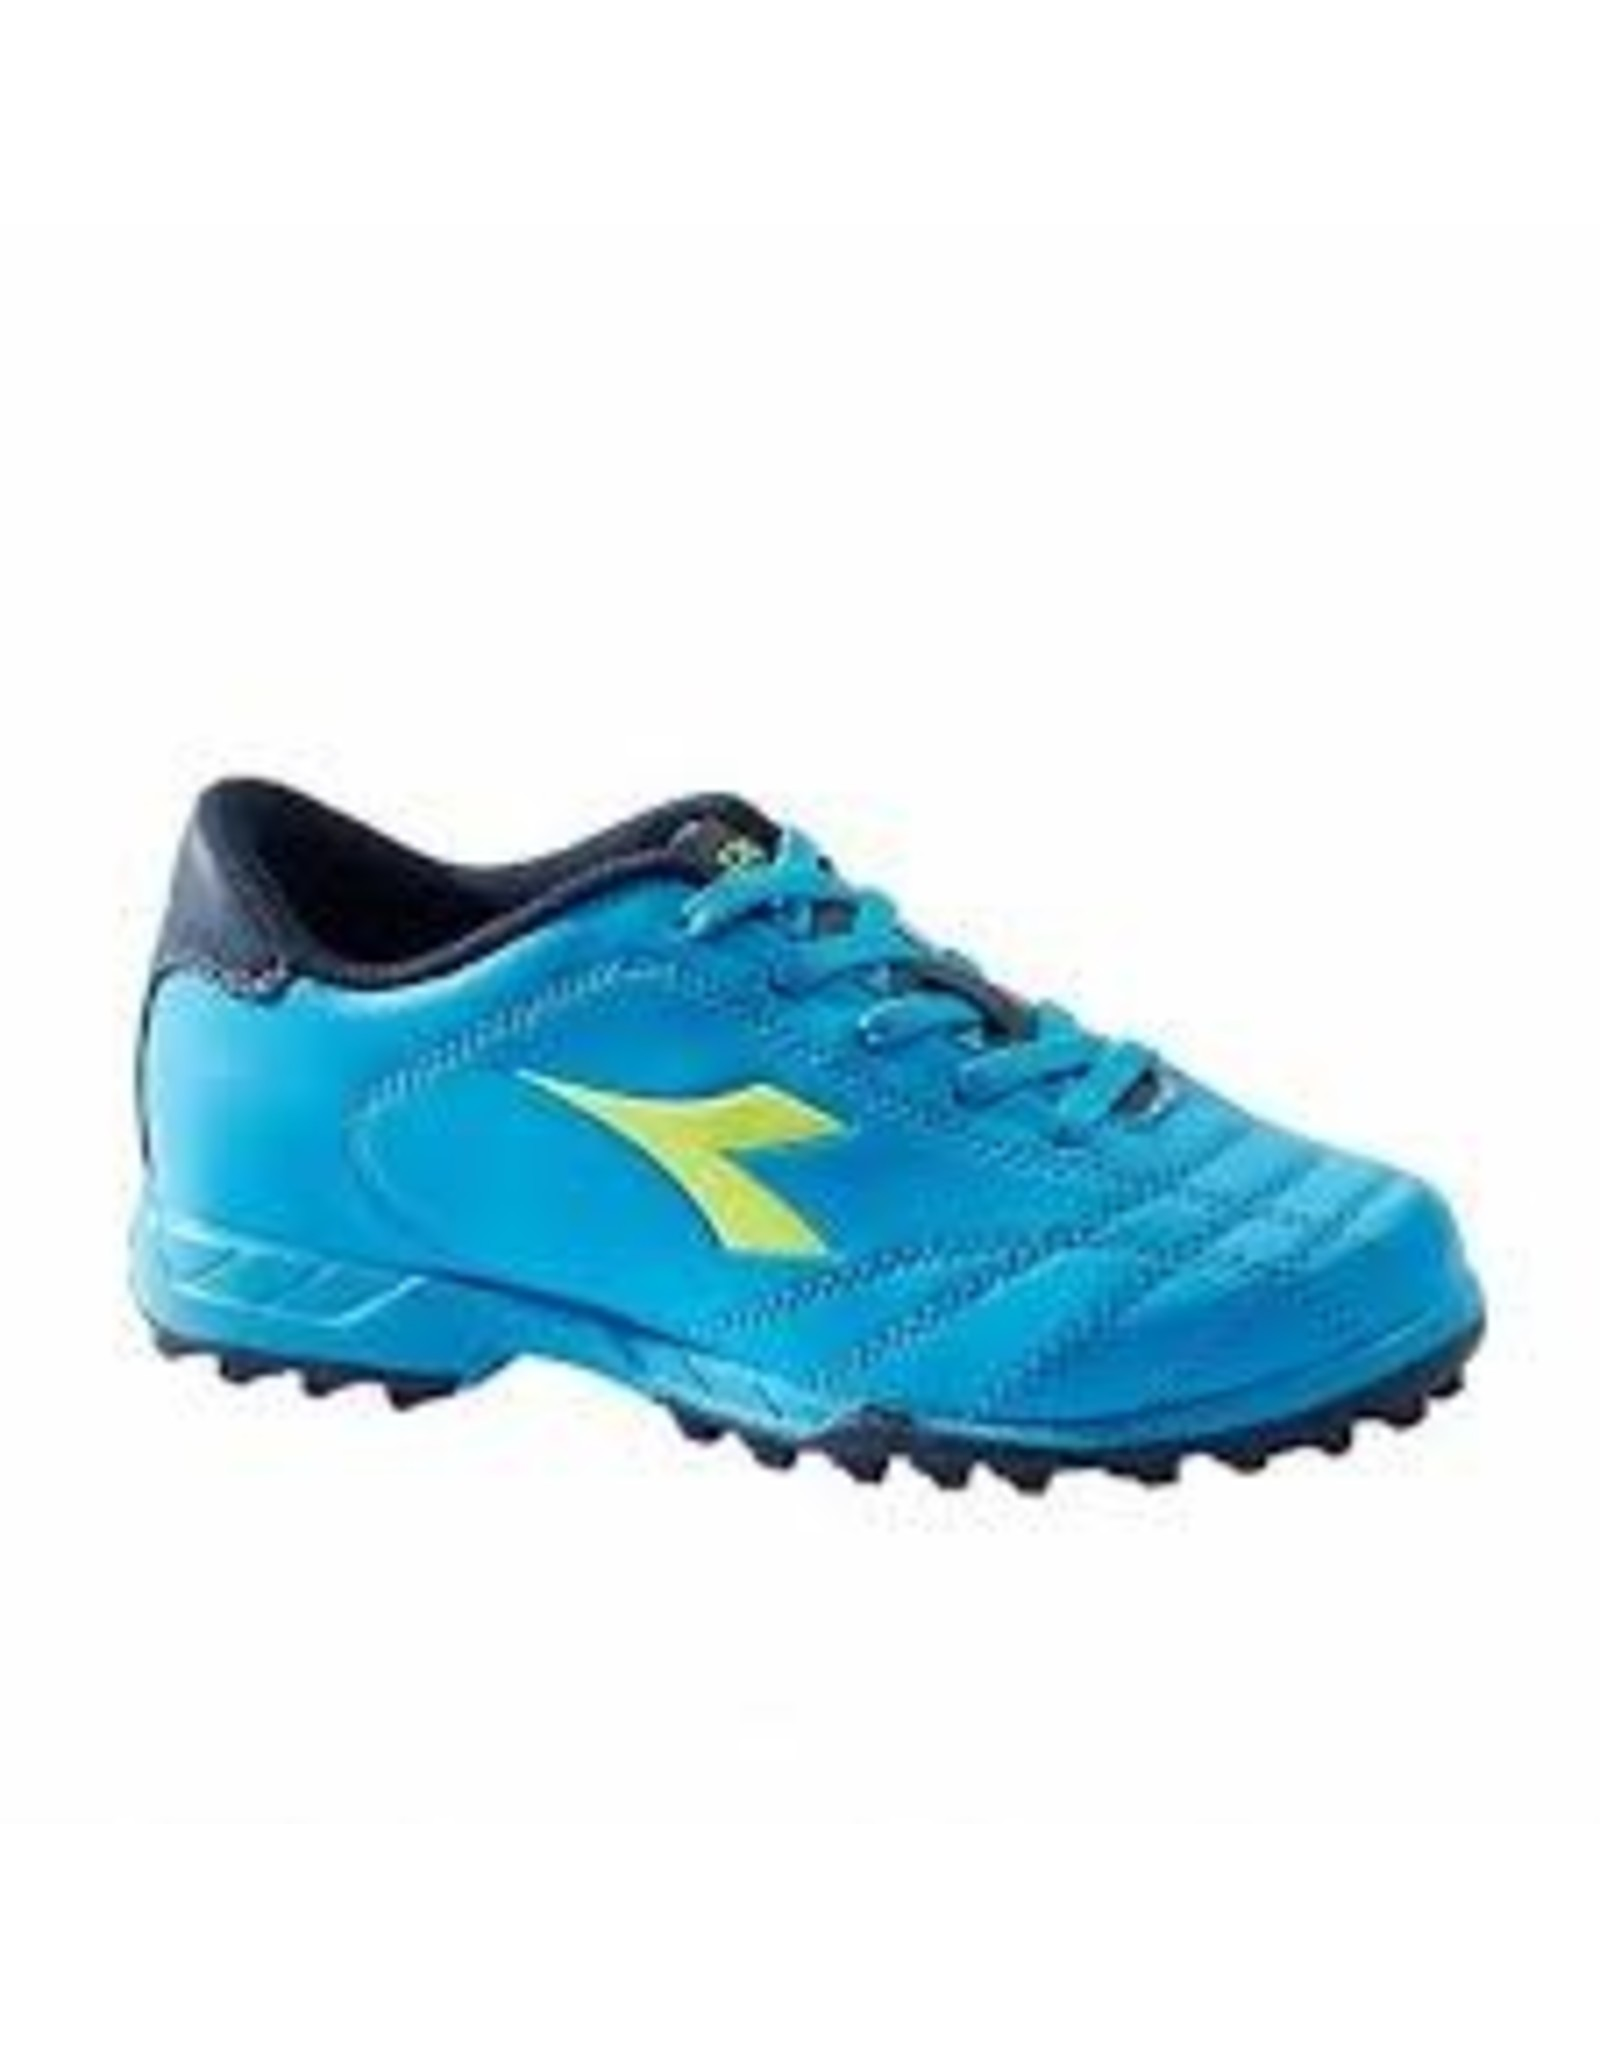 Diadora Diadora 6PLAY TF Junior Shoes (Blue Fluo/Yellow Fluo)